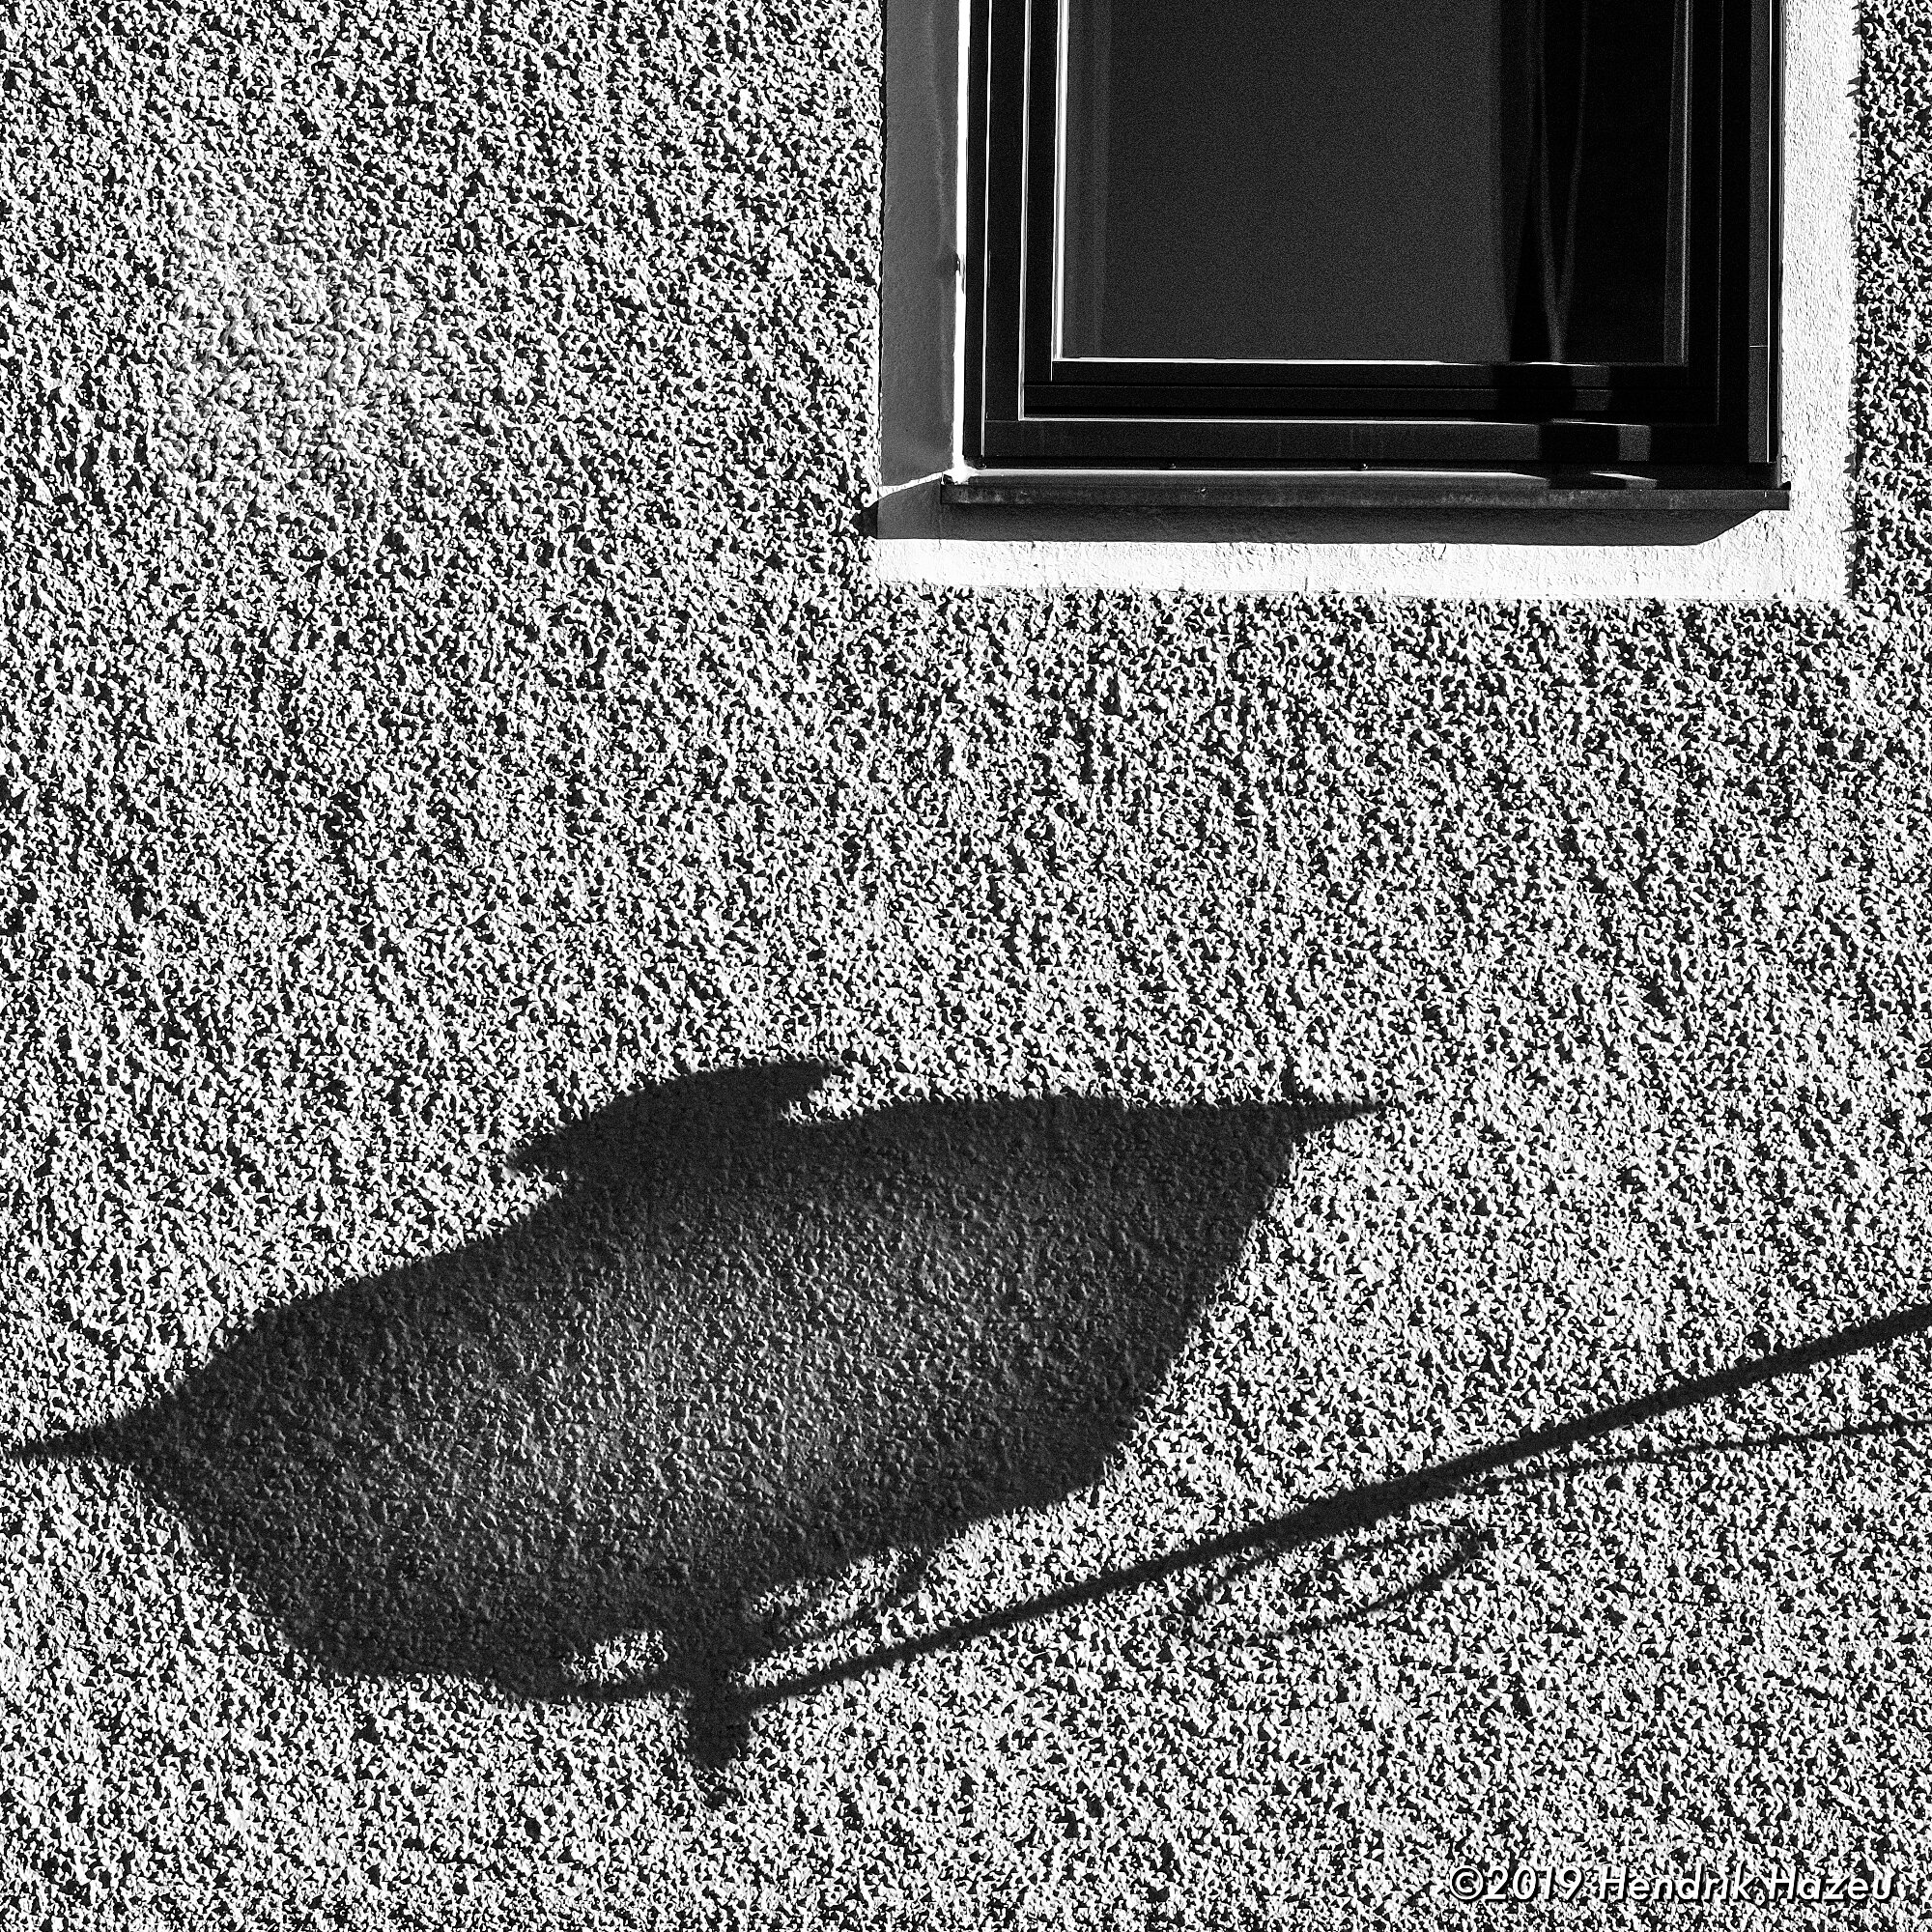 Wall with shadow of another lantern, captured on X-H1 with XF 90mm F/2 @F/8, 1/600 sec, ISO 400